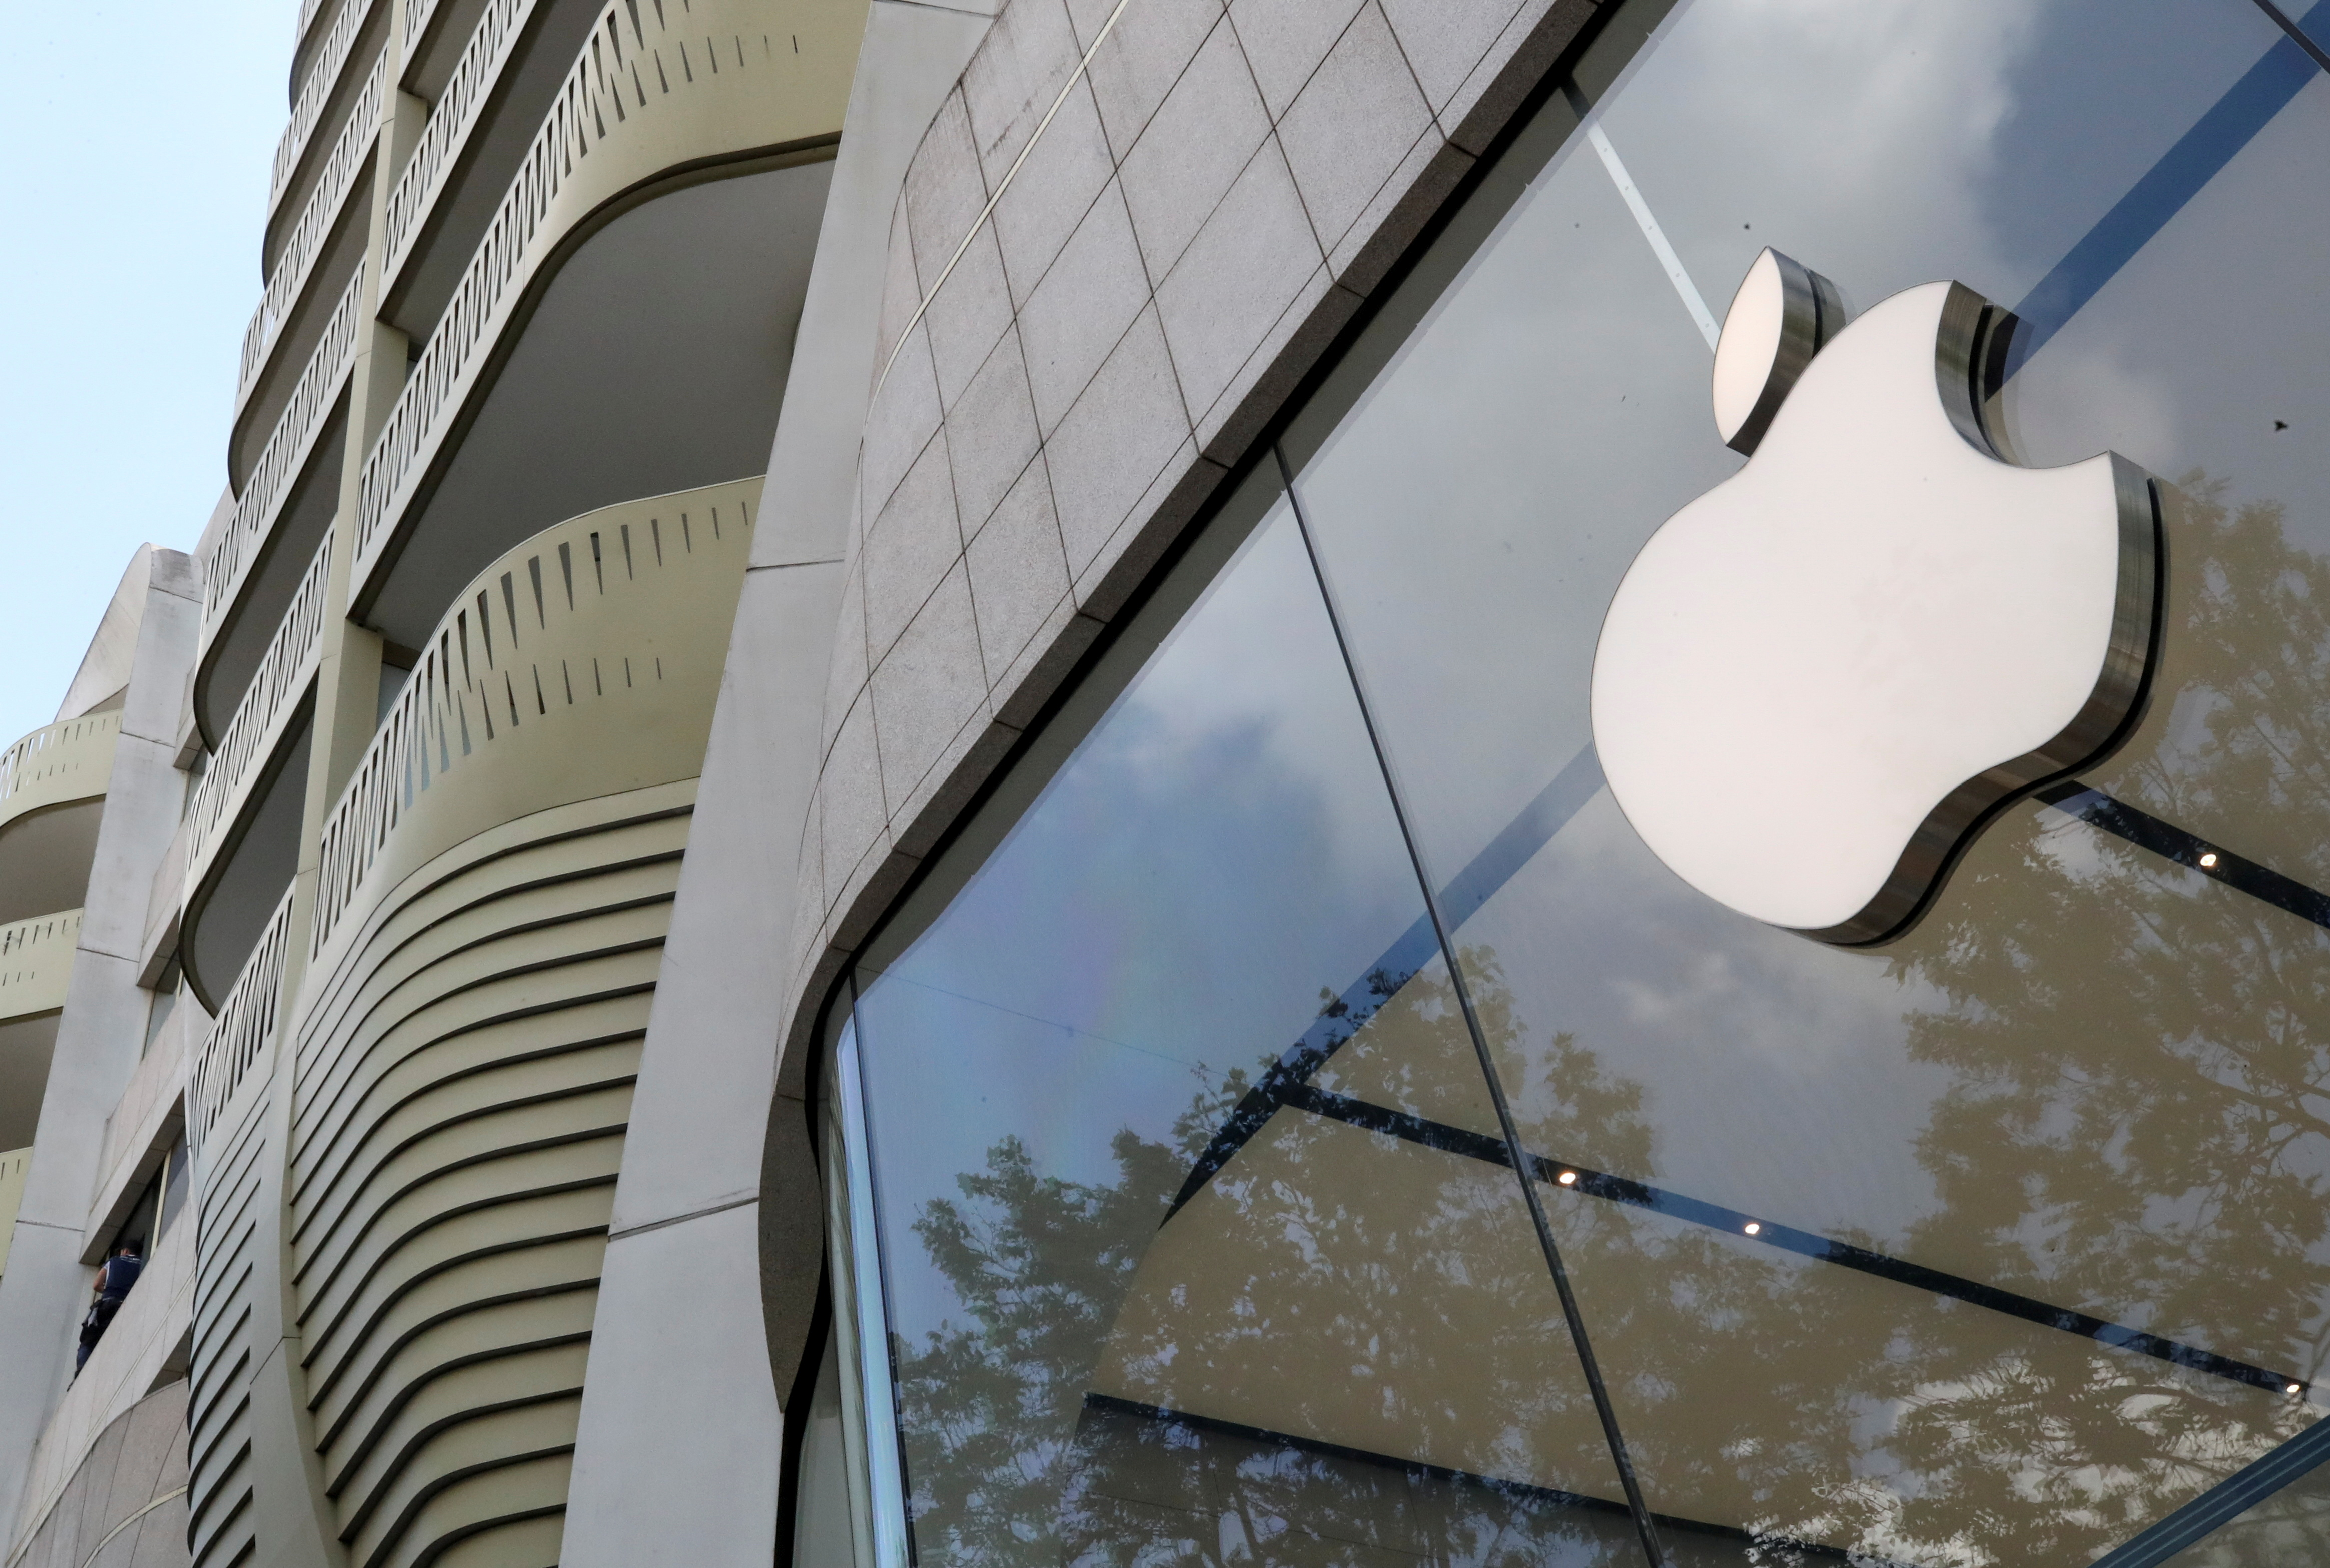 The Apple Inc logo is seen at the entrance to the Apple store in Brussels, Belgium July 2, 2021. REUTERS/Yves Herman